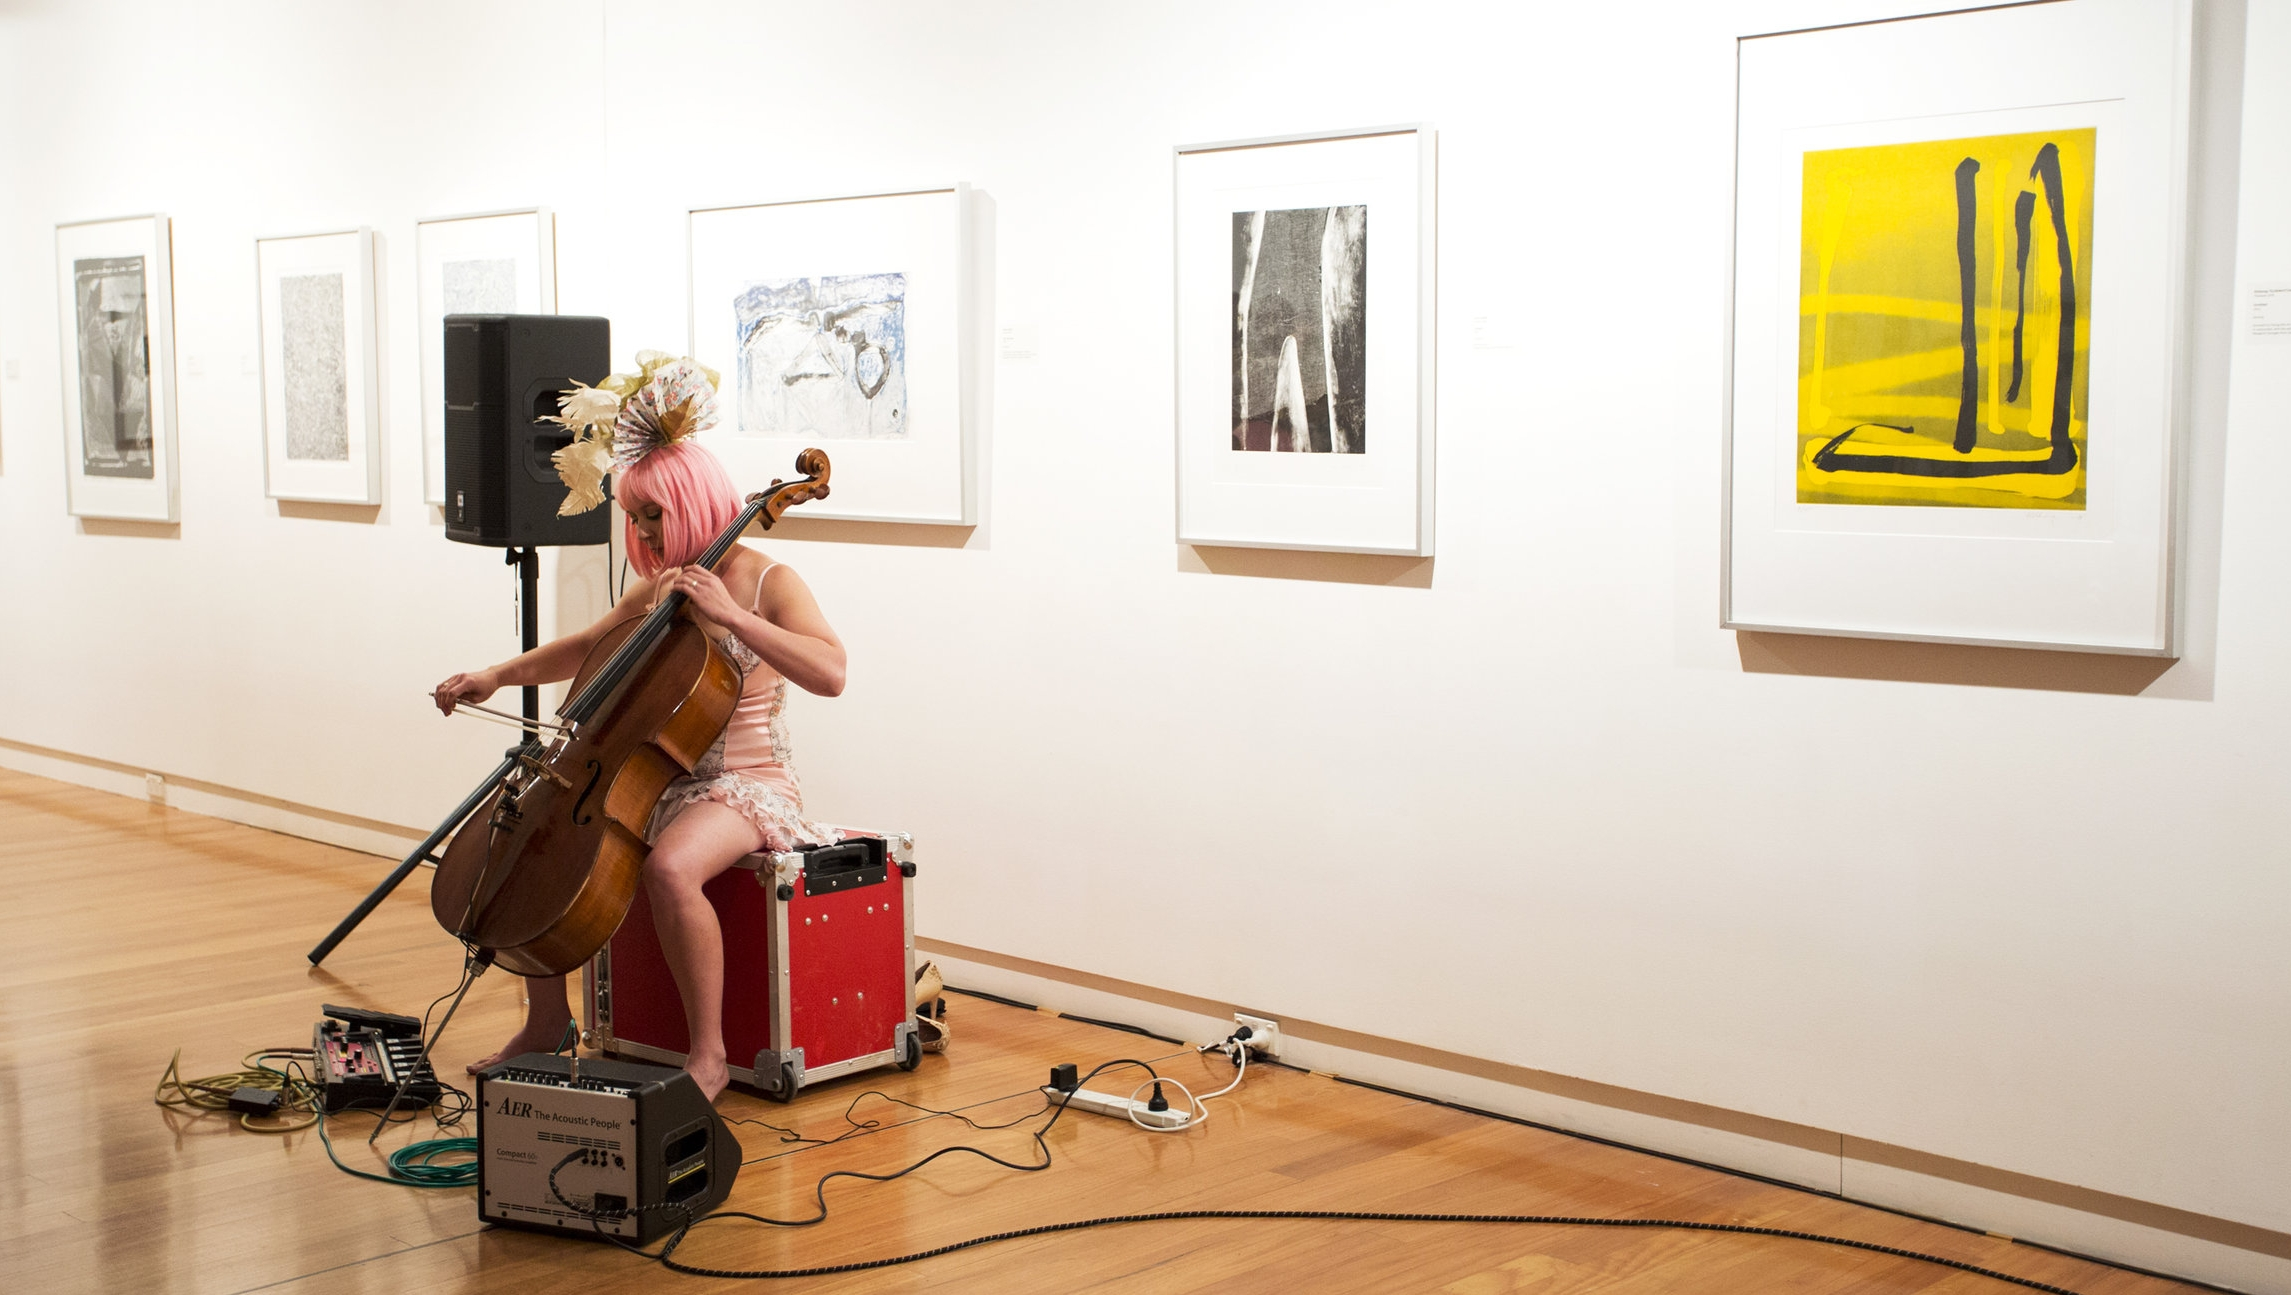 Clare Brassil wearing a custom made Papel (Paper) wearable for the launch of Cello Riot album. Image @jacobpraupach